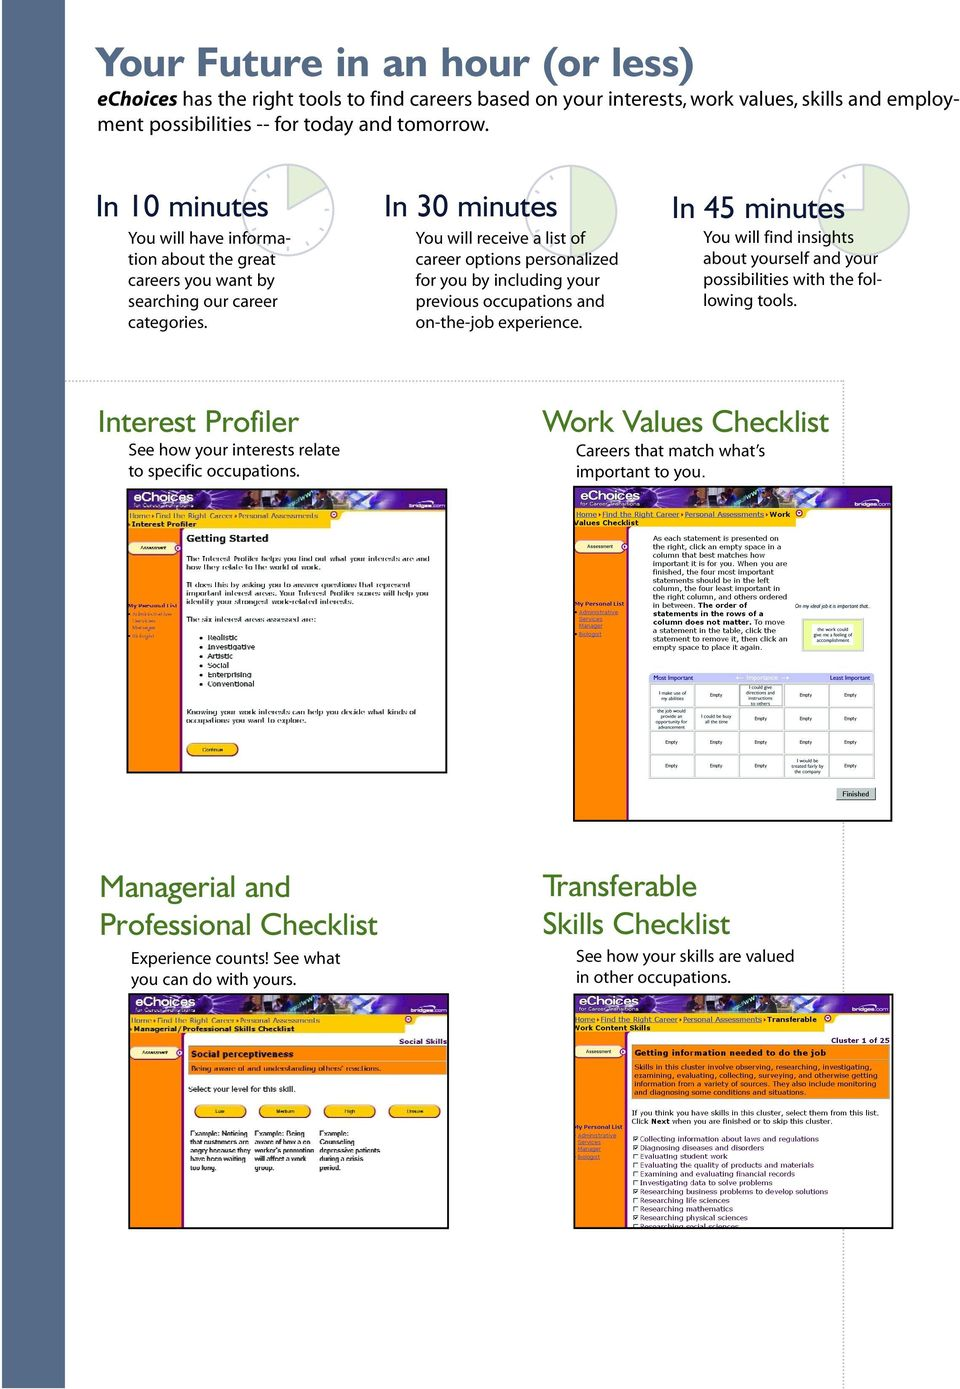 Managerial and Professional Checklist Experience counts! See what you can do with yours.